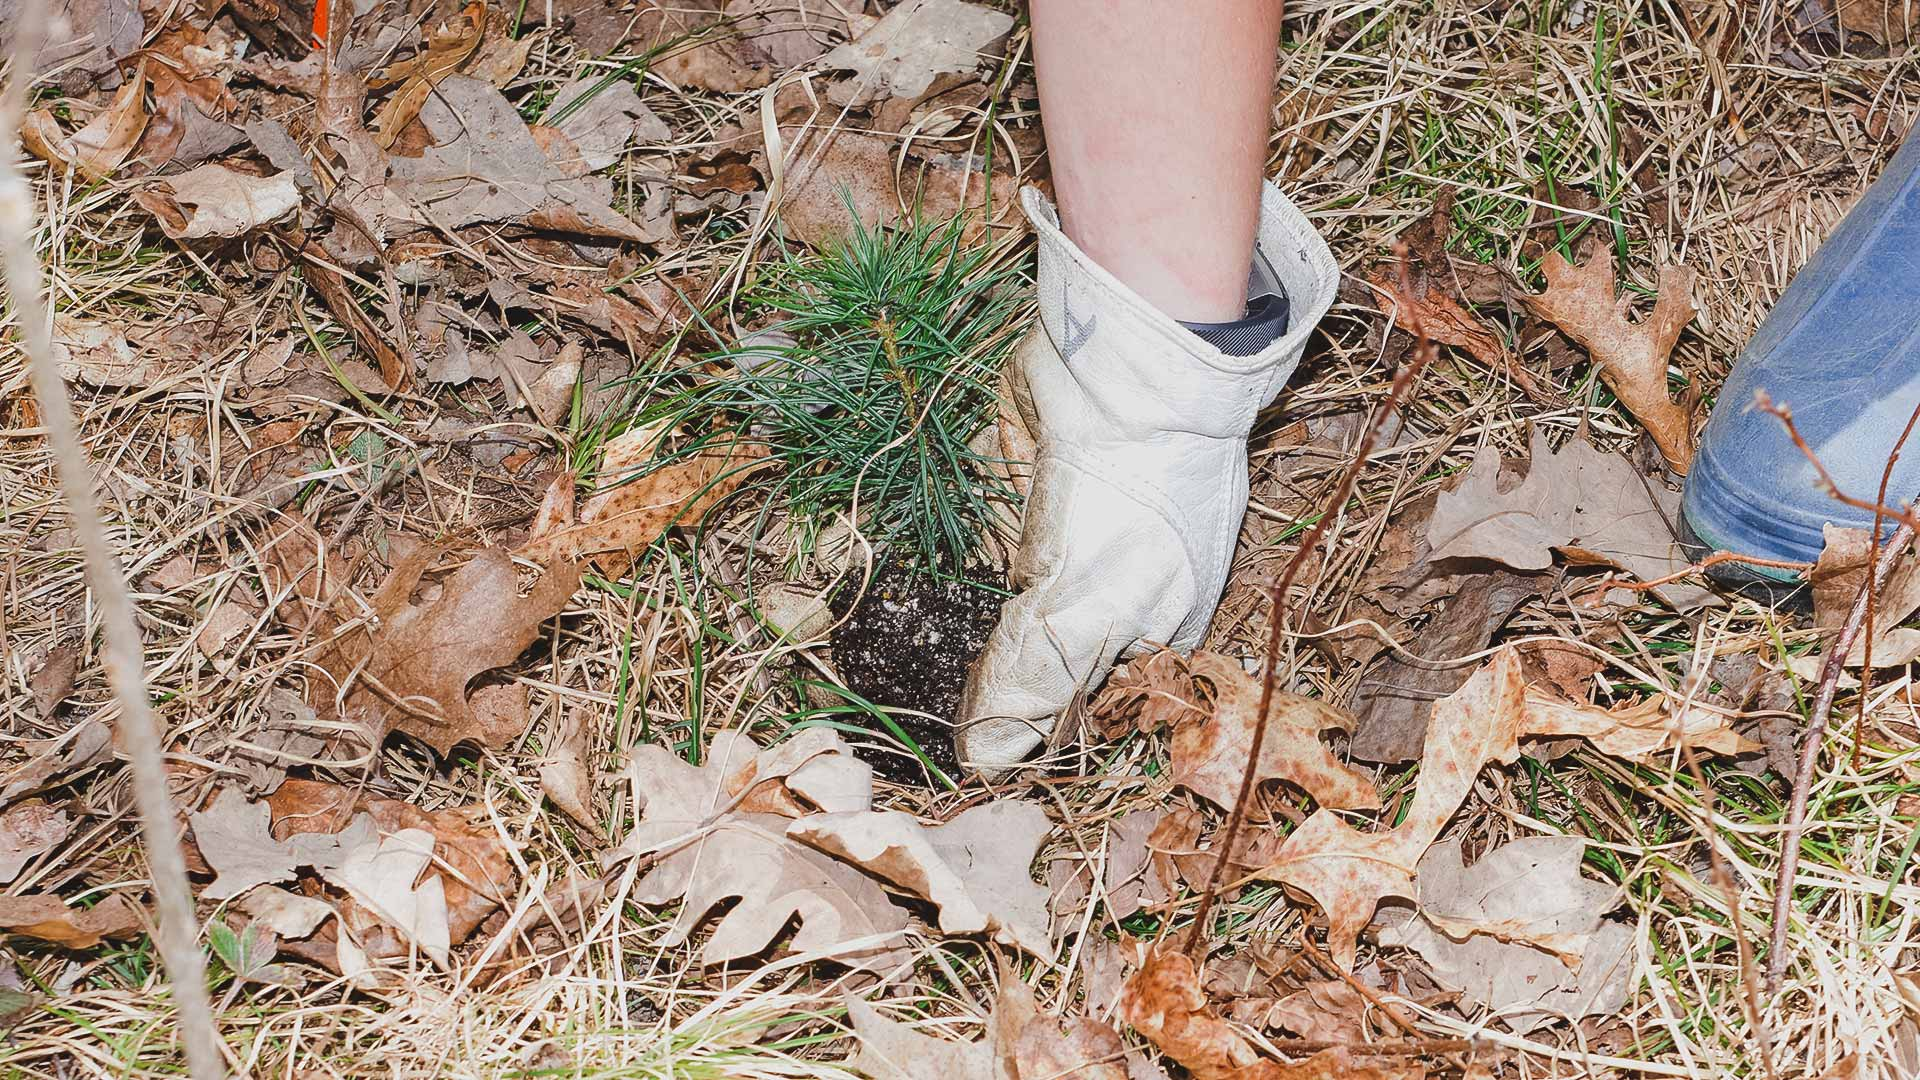 UMN Crookston Student planting a pine tree in the woods